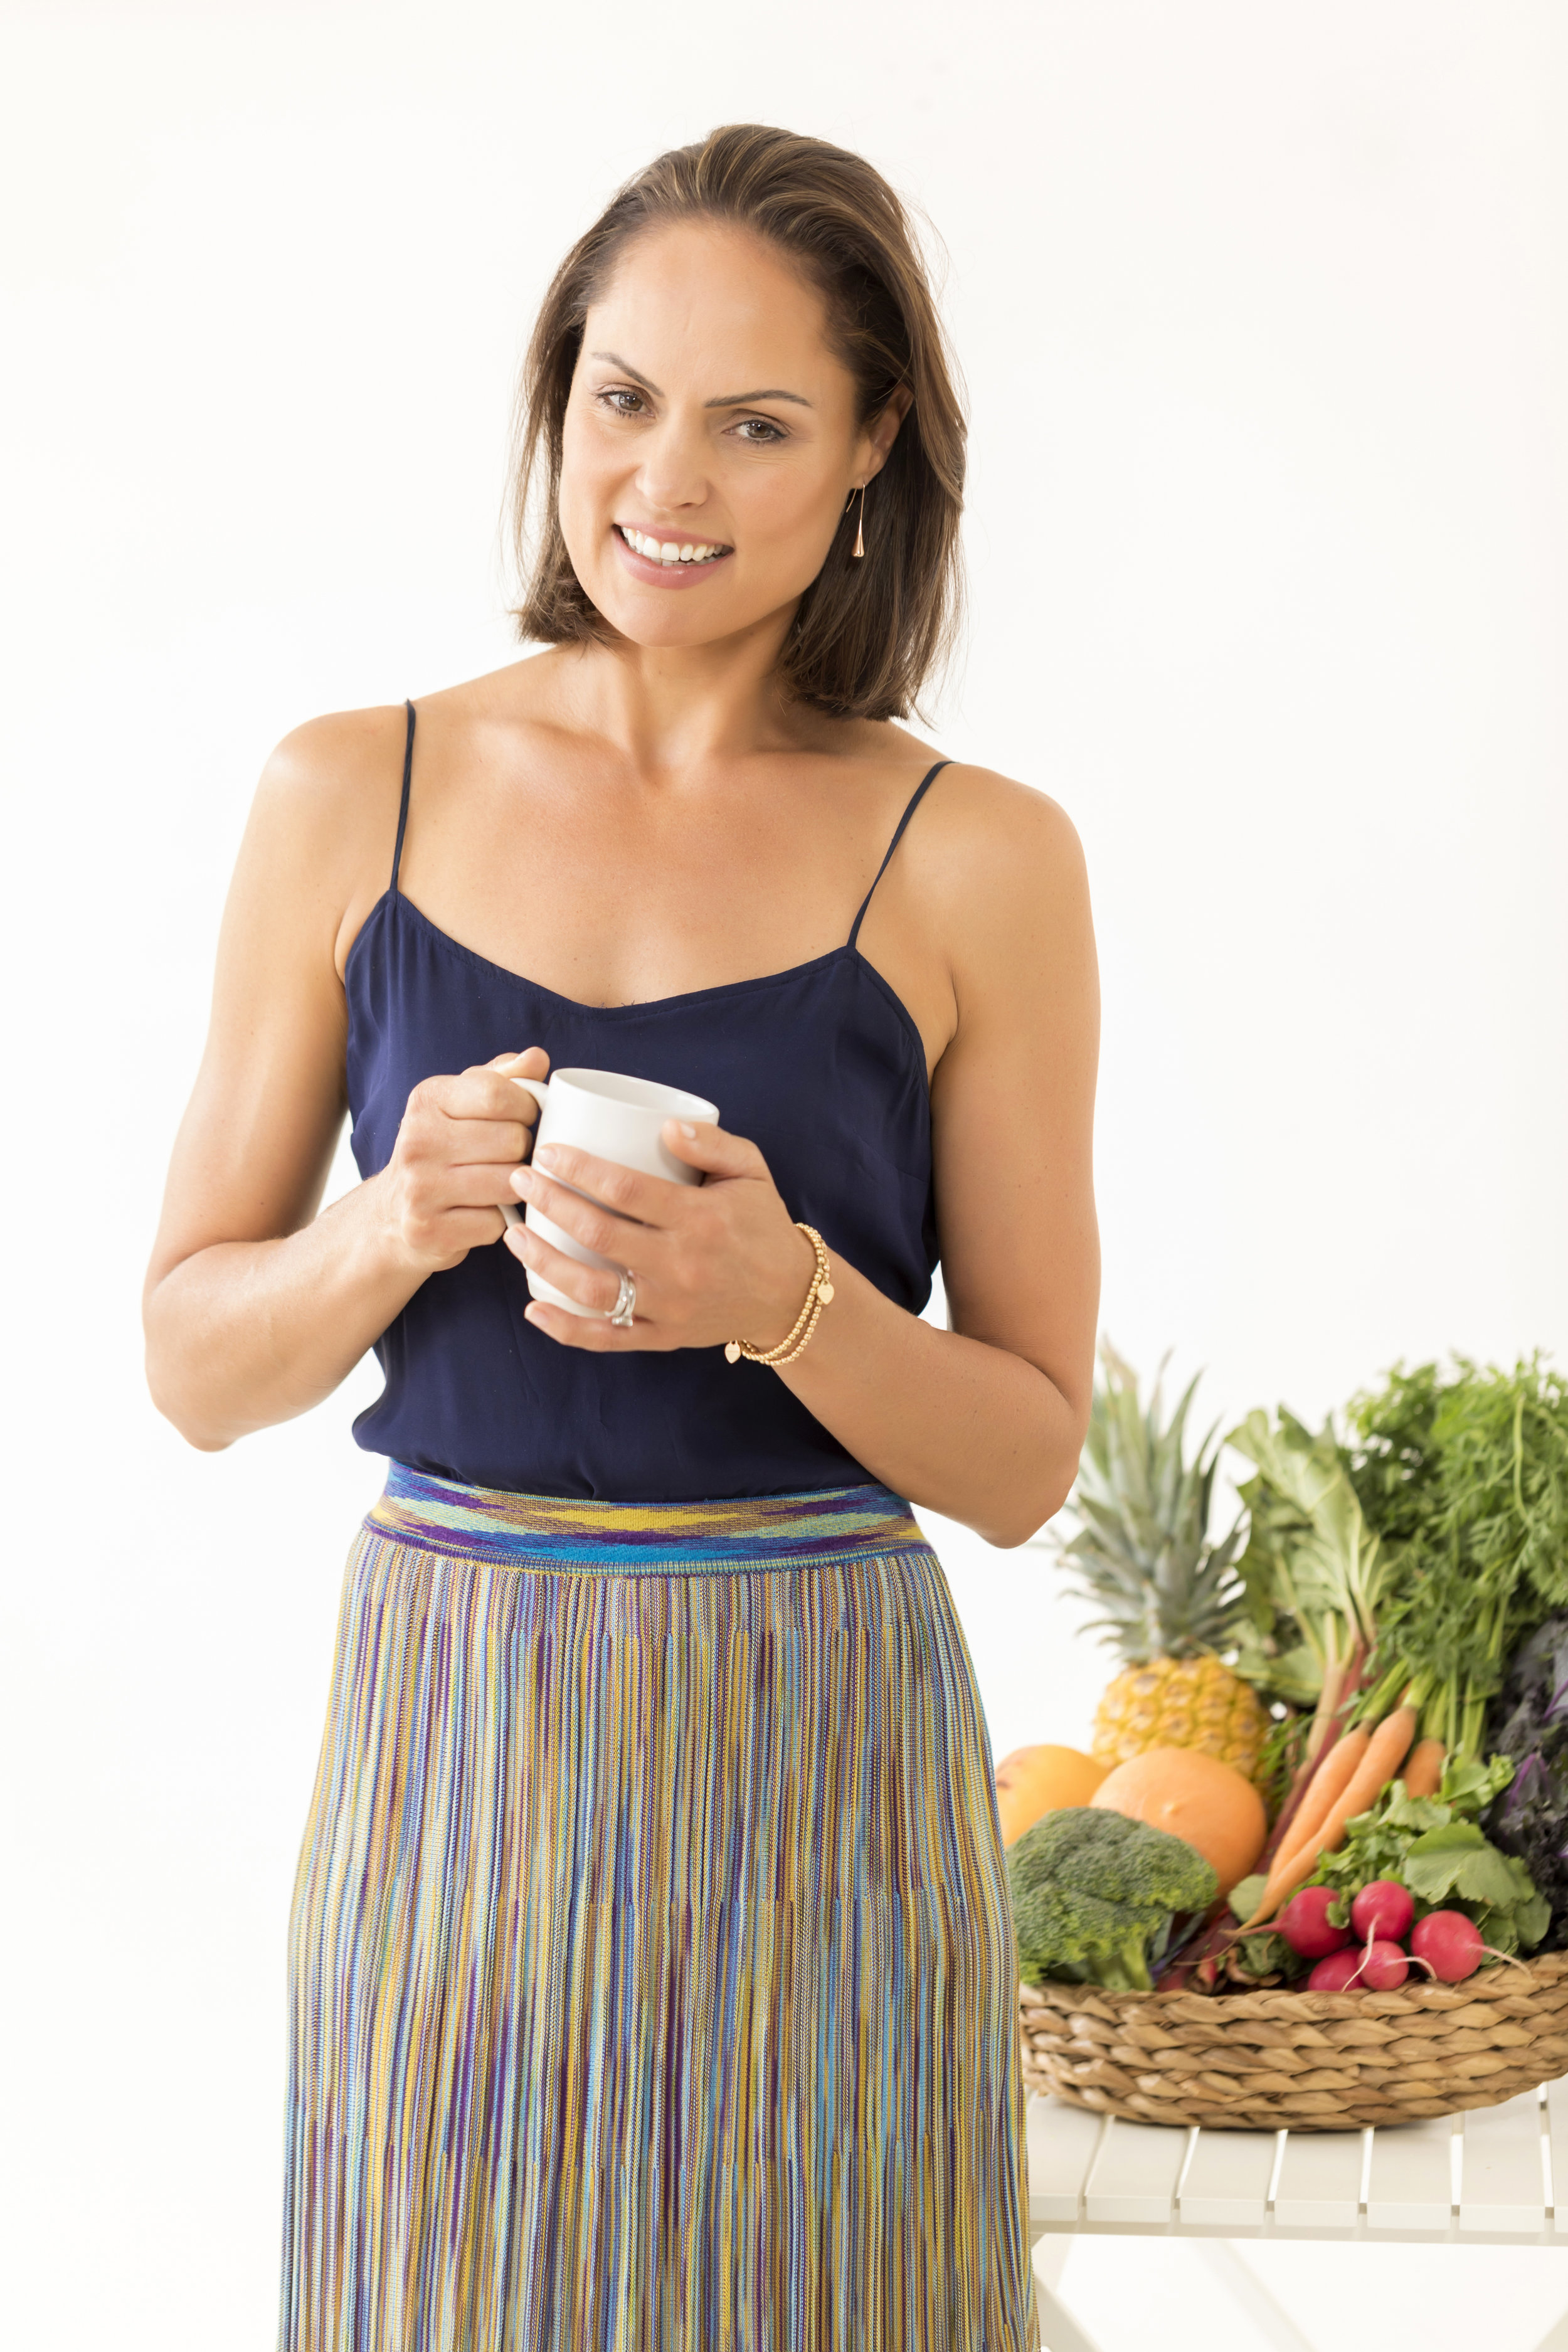 """Zoe Bingley-Pullin - Mum of one, Zoe is a nutritionist, chef and founder of Nutritional Edge, a nutritional consultancy business. Zoe is also a presenter on Channel 7's The House of Wellness and films regular segments for them as well as appearing on their radio show of a Sunday morning. Her 8-week Falling in Love with Food program is yet another string to this busy mum's bow, as she guides people in how to fall in love with food and regain their confidence in the kitchen.""""I am grateful on a daily basis to be doing a job I love and feel passionate about,"""" says Zoe. """"It's important for me to teach my daughter that it is possible to achieve what you want in life as long as you work hard, have confidence in yourself and understand the importance of perseverance.""""A great outlook to have, it can prove incredibly difficult to please everyone when you're a mum, and not just your immediate family but society at large. Women often feel the 'damned if you do/damned if you don't' sentiment as they endeavour to satisfy their maternal desires together with providing for their family. """"It's hard to find the perfect balance,"""" says Zoe. """"However, I feel comforted knowing that my daughter has come ahead of every career decision I have made.""""Mothers who work should not be judged negatively, and yet whether we do return to work or whether we choose to stay at home, that judgement rolls in anyway. I know plenty of women who admitted to feeling more comfortable in their professional role than that of mother and others who had no choice but to return to work due to financial reasons; it's the way of the world. """"Like any mother, I could prefer to be with (my daughter) than at work but I know that when I am working she is in a happy and safe environment and I couldn't ask for more,"""" says Zoe. """"I also remind myself that by working, I can give my daughter more opportunities and because working in a job I love, brings me happiness, it helps me be my best self for my family.""""Undoubtedly the gu"""